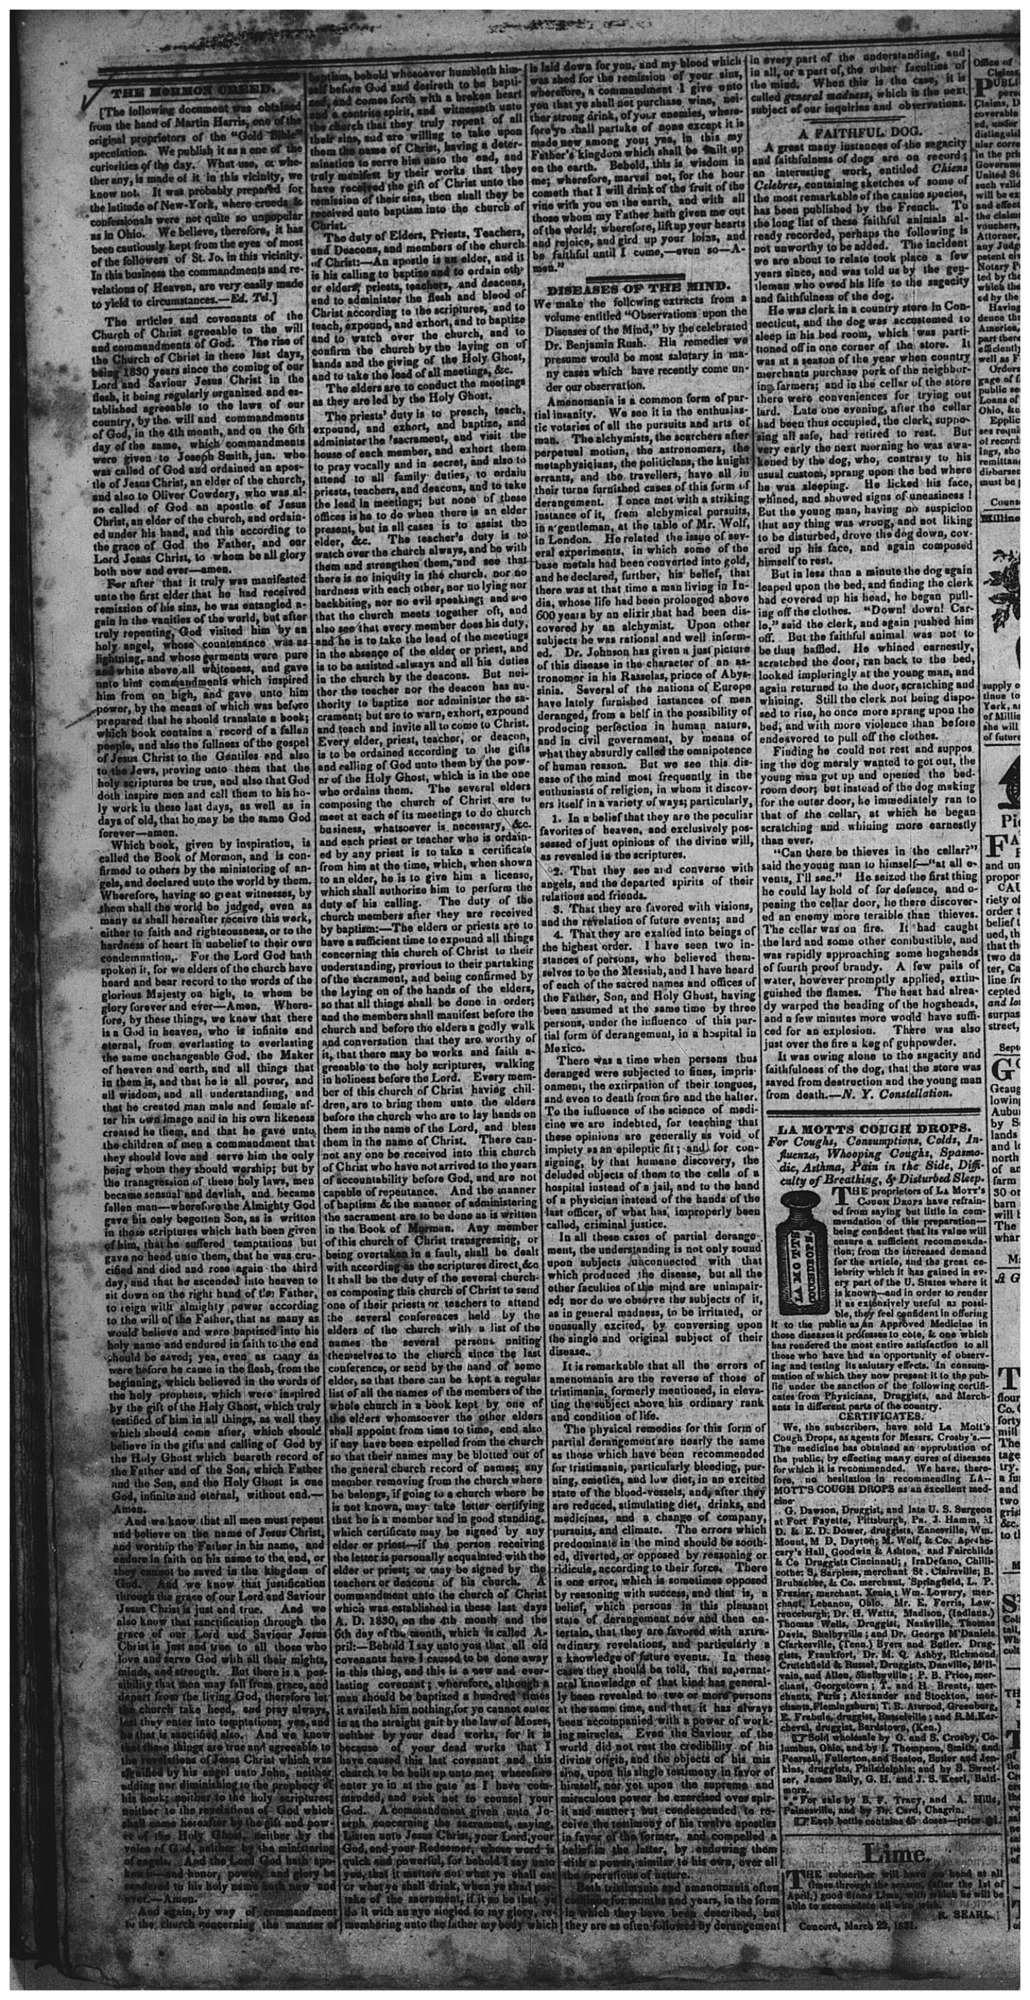 Articles and Covenants, circa April 1830 [D&C 20], Page 4